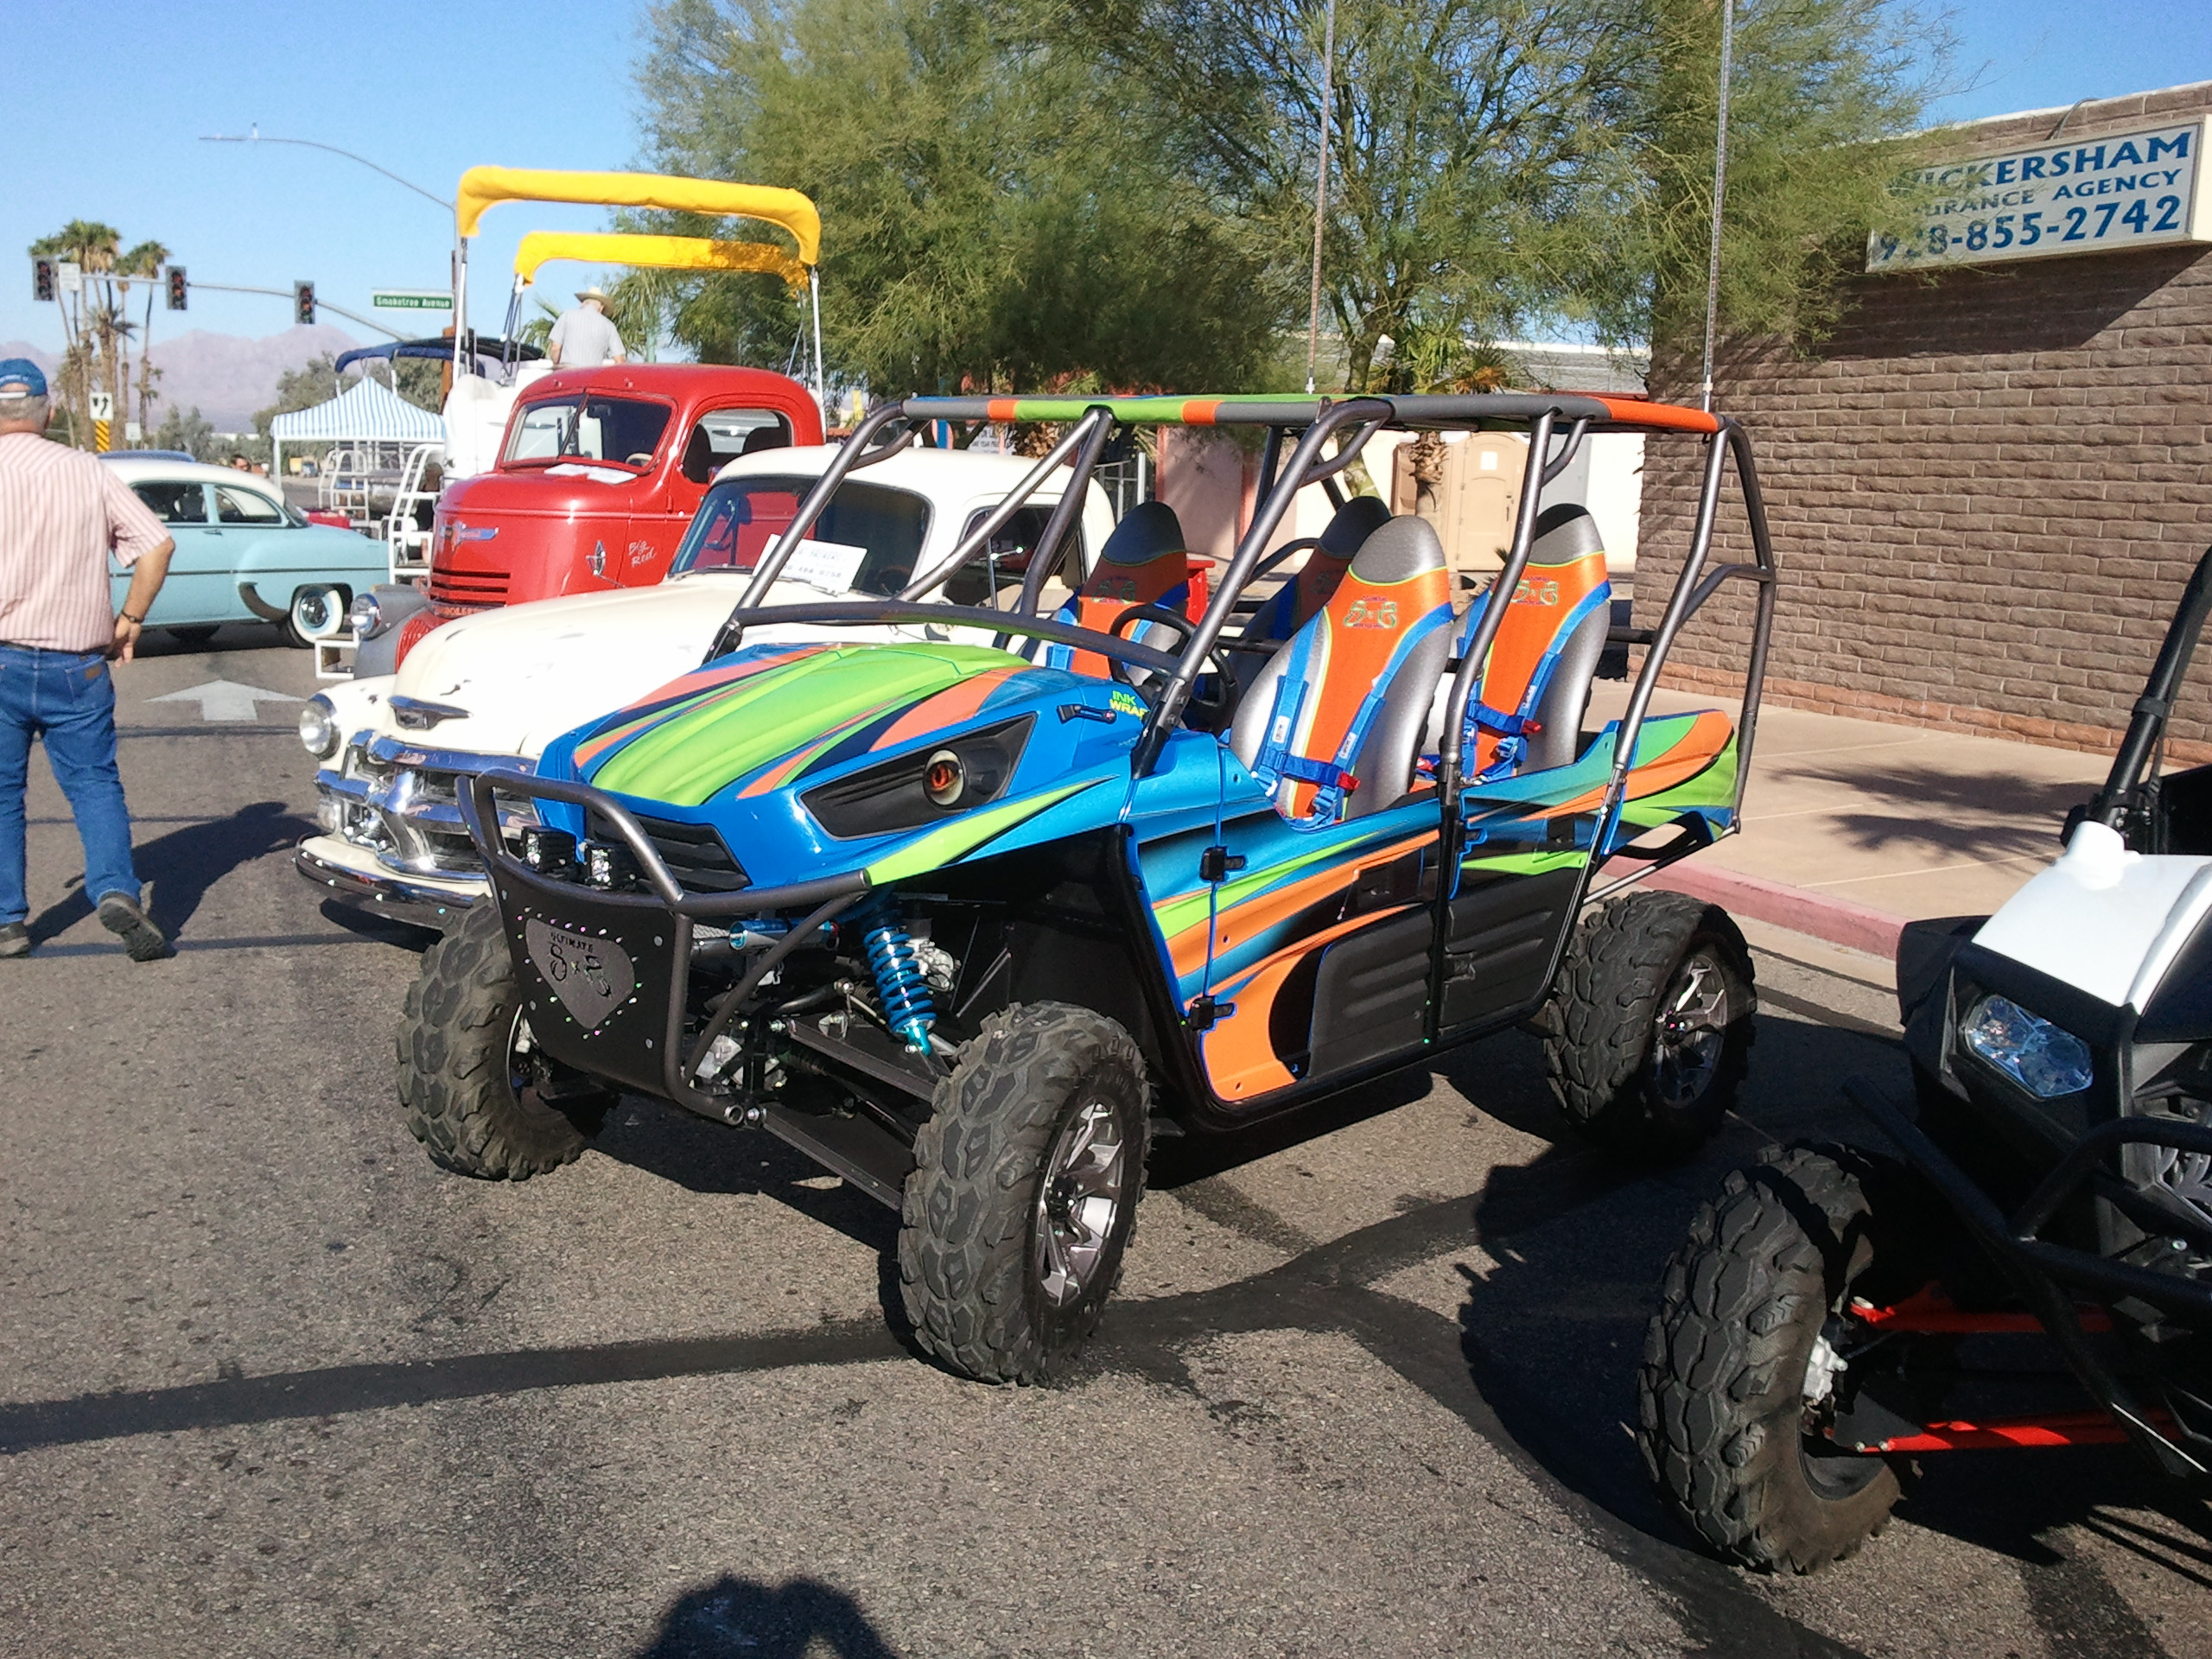 lake havasu city Big Boys Toys on Main